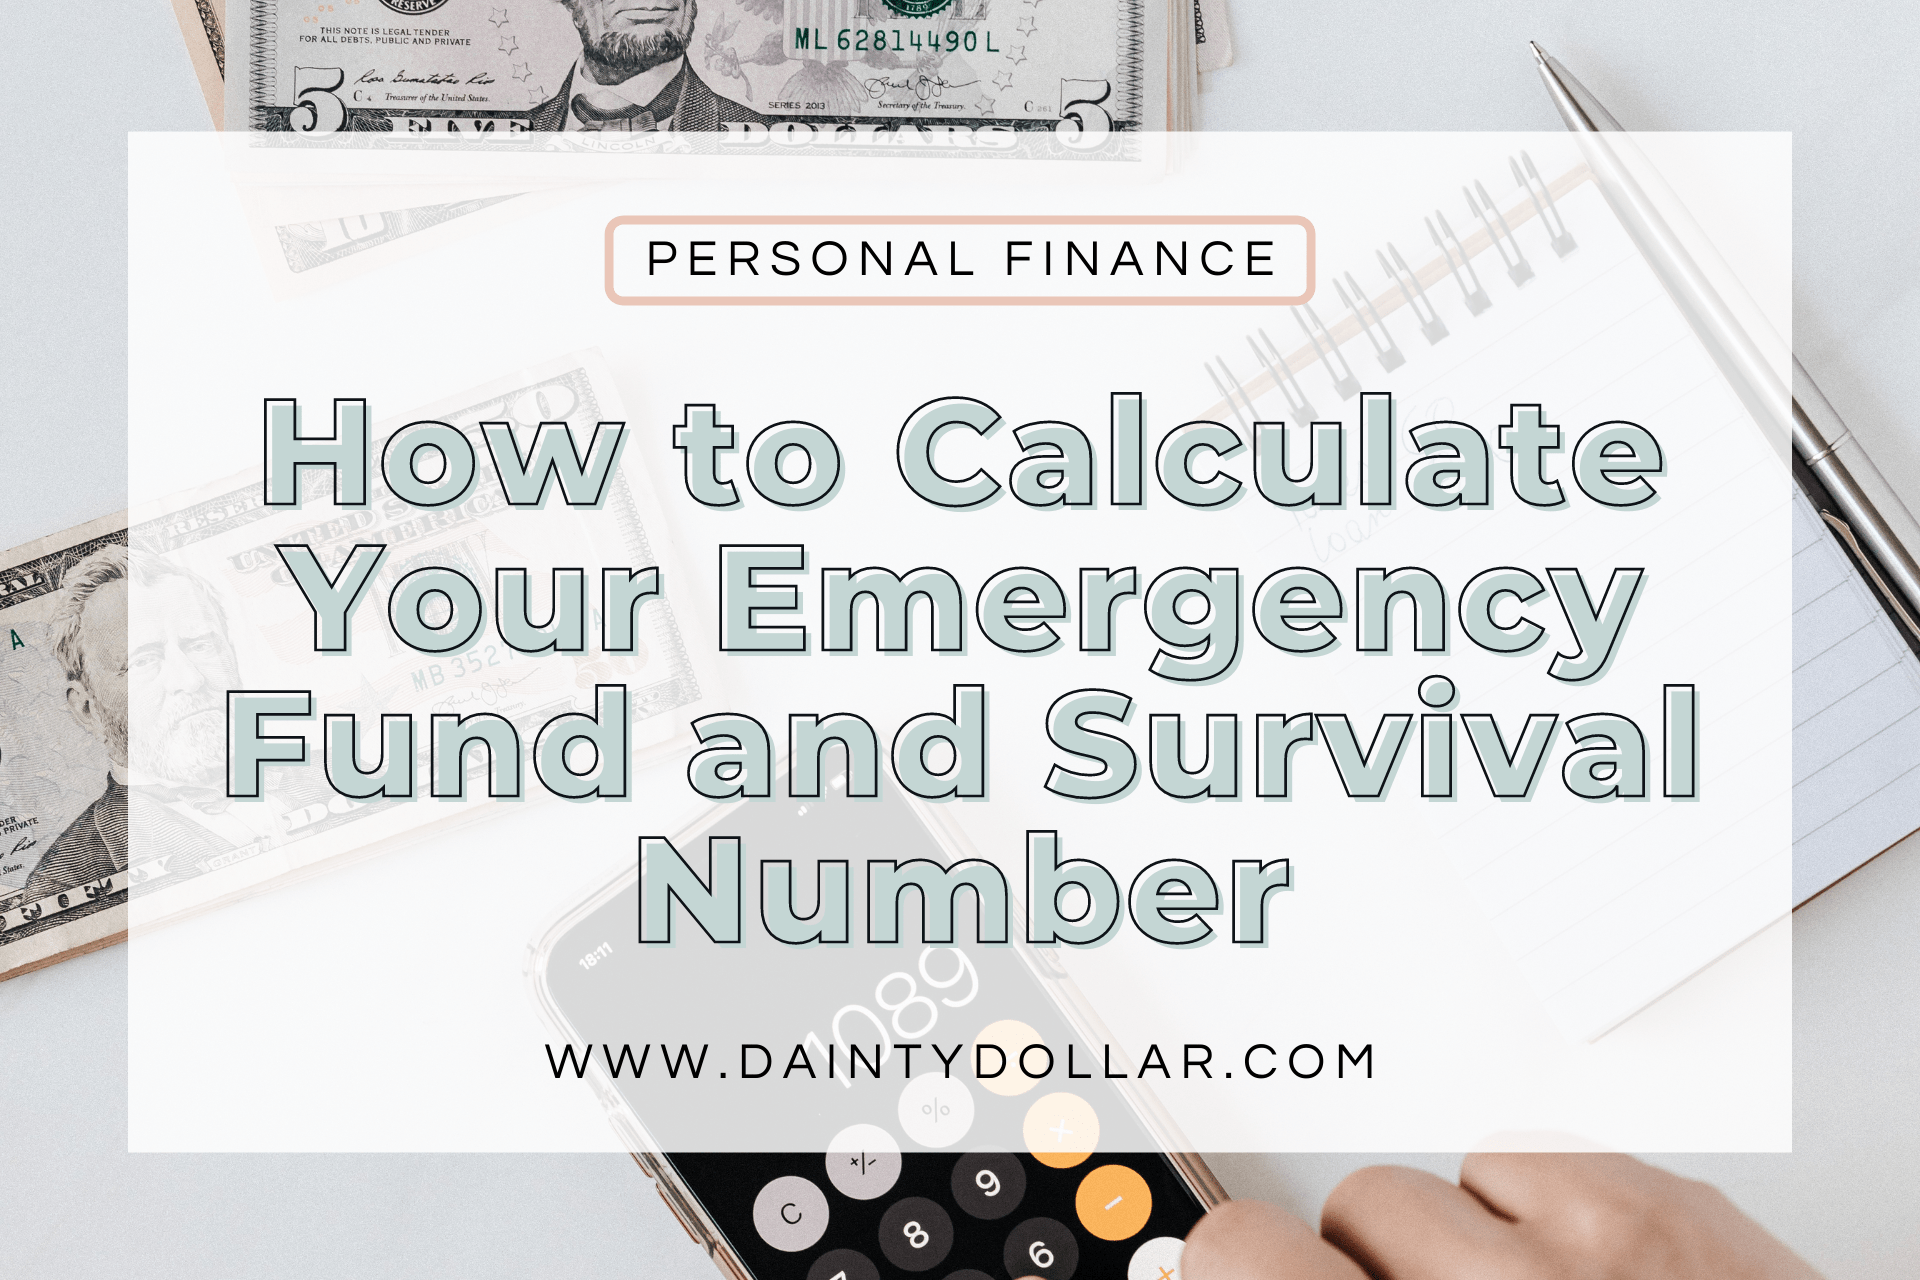 How to Calculate Your Emergency Fund and Survival Number - Dainty Dollar